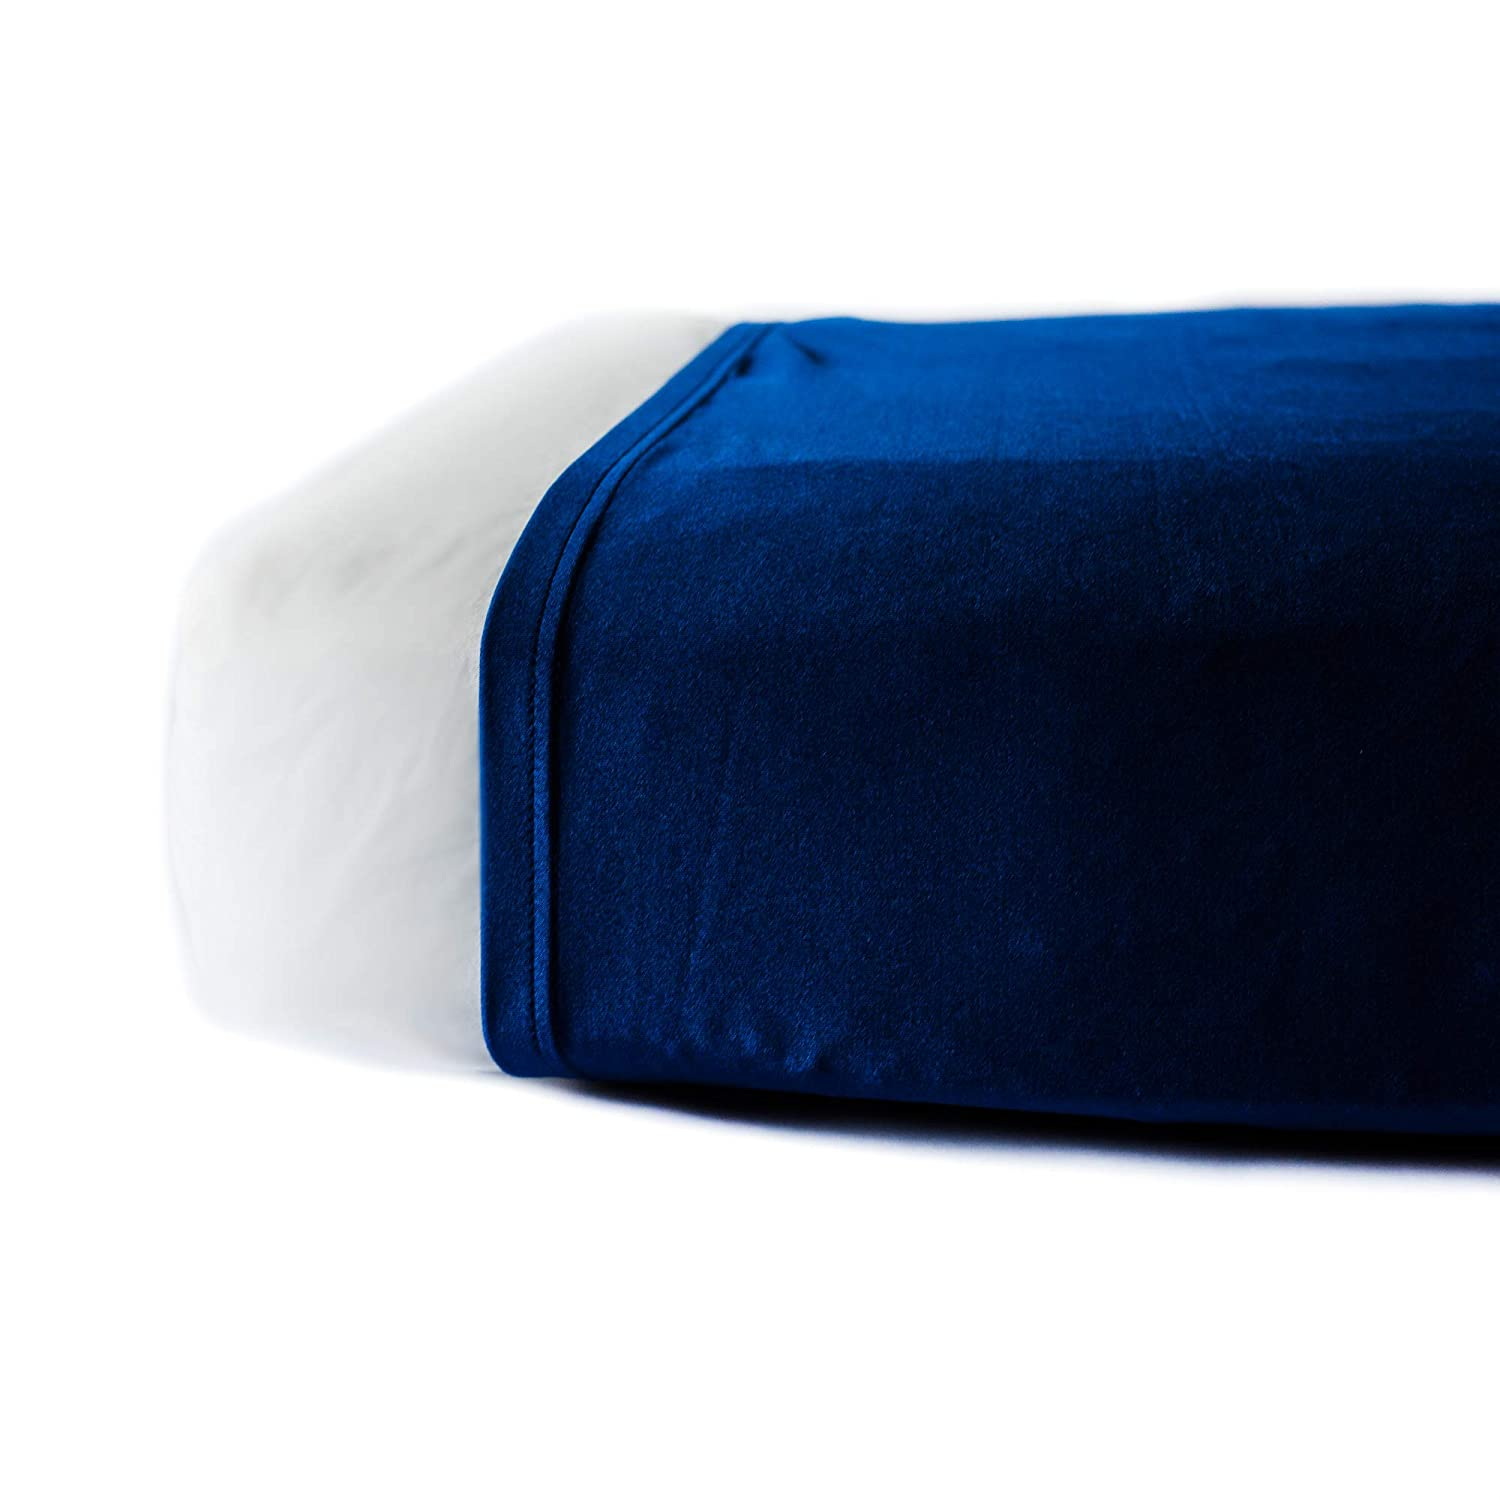 Yorkville Snuggle Sheet - Compression Sheet Alternative to Weighted Blankets for hot Weather - Cheaper, Lighter Lycra and Nylon (Twin) Yorkville Blanket Company